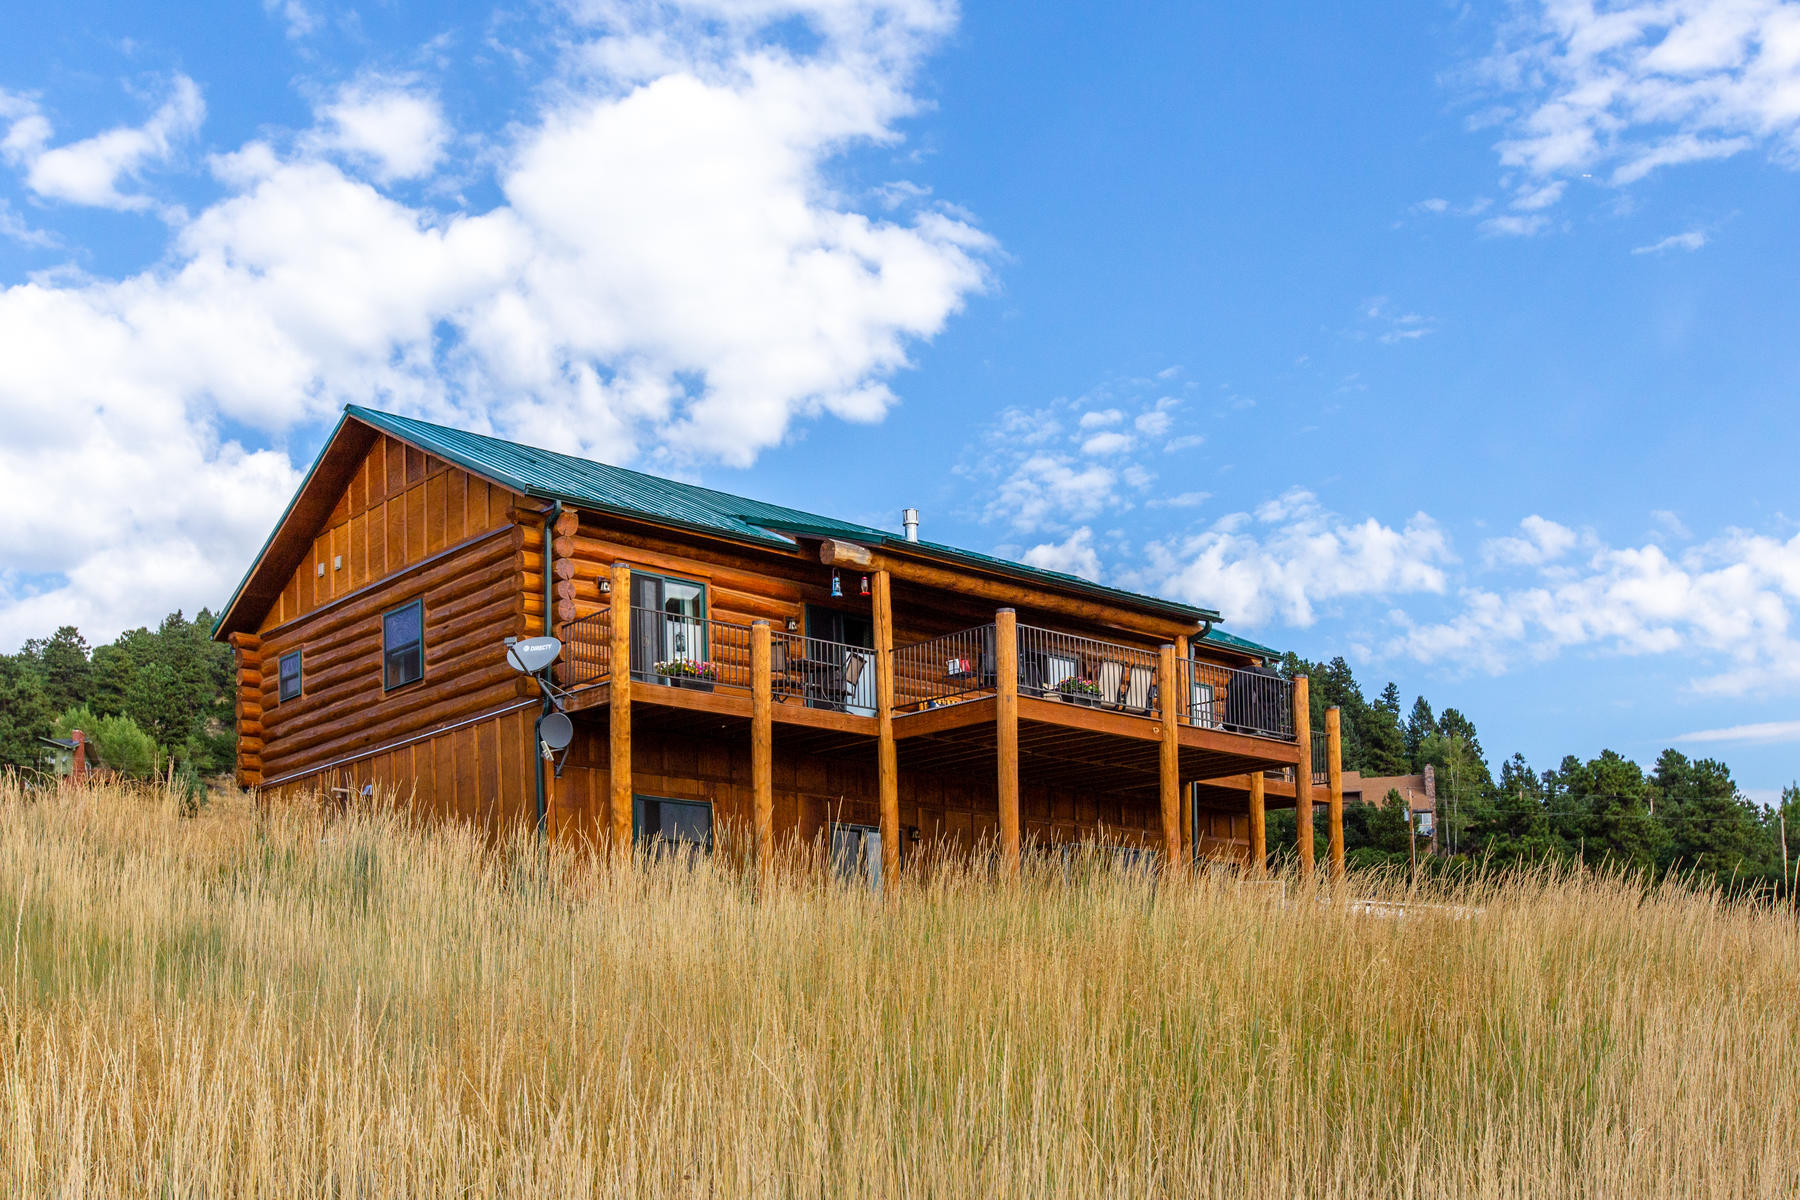 Single Family Homes for Active at You will love this beautiful custom built log home 6832 Peaceful Hills Rd Morrison, Colorado 80465 United States